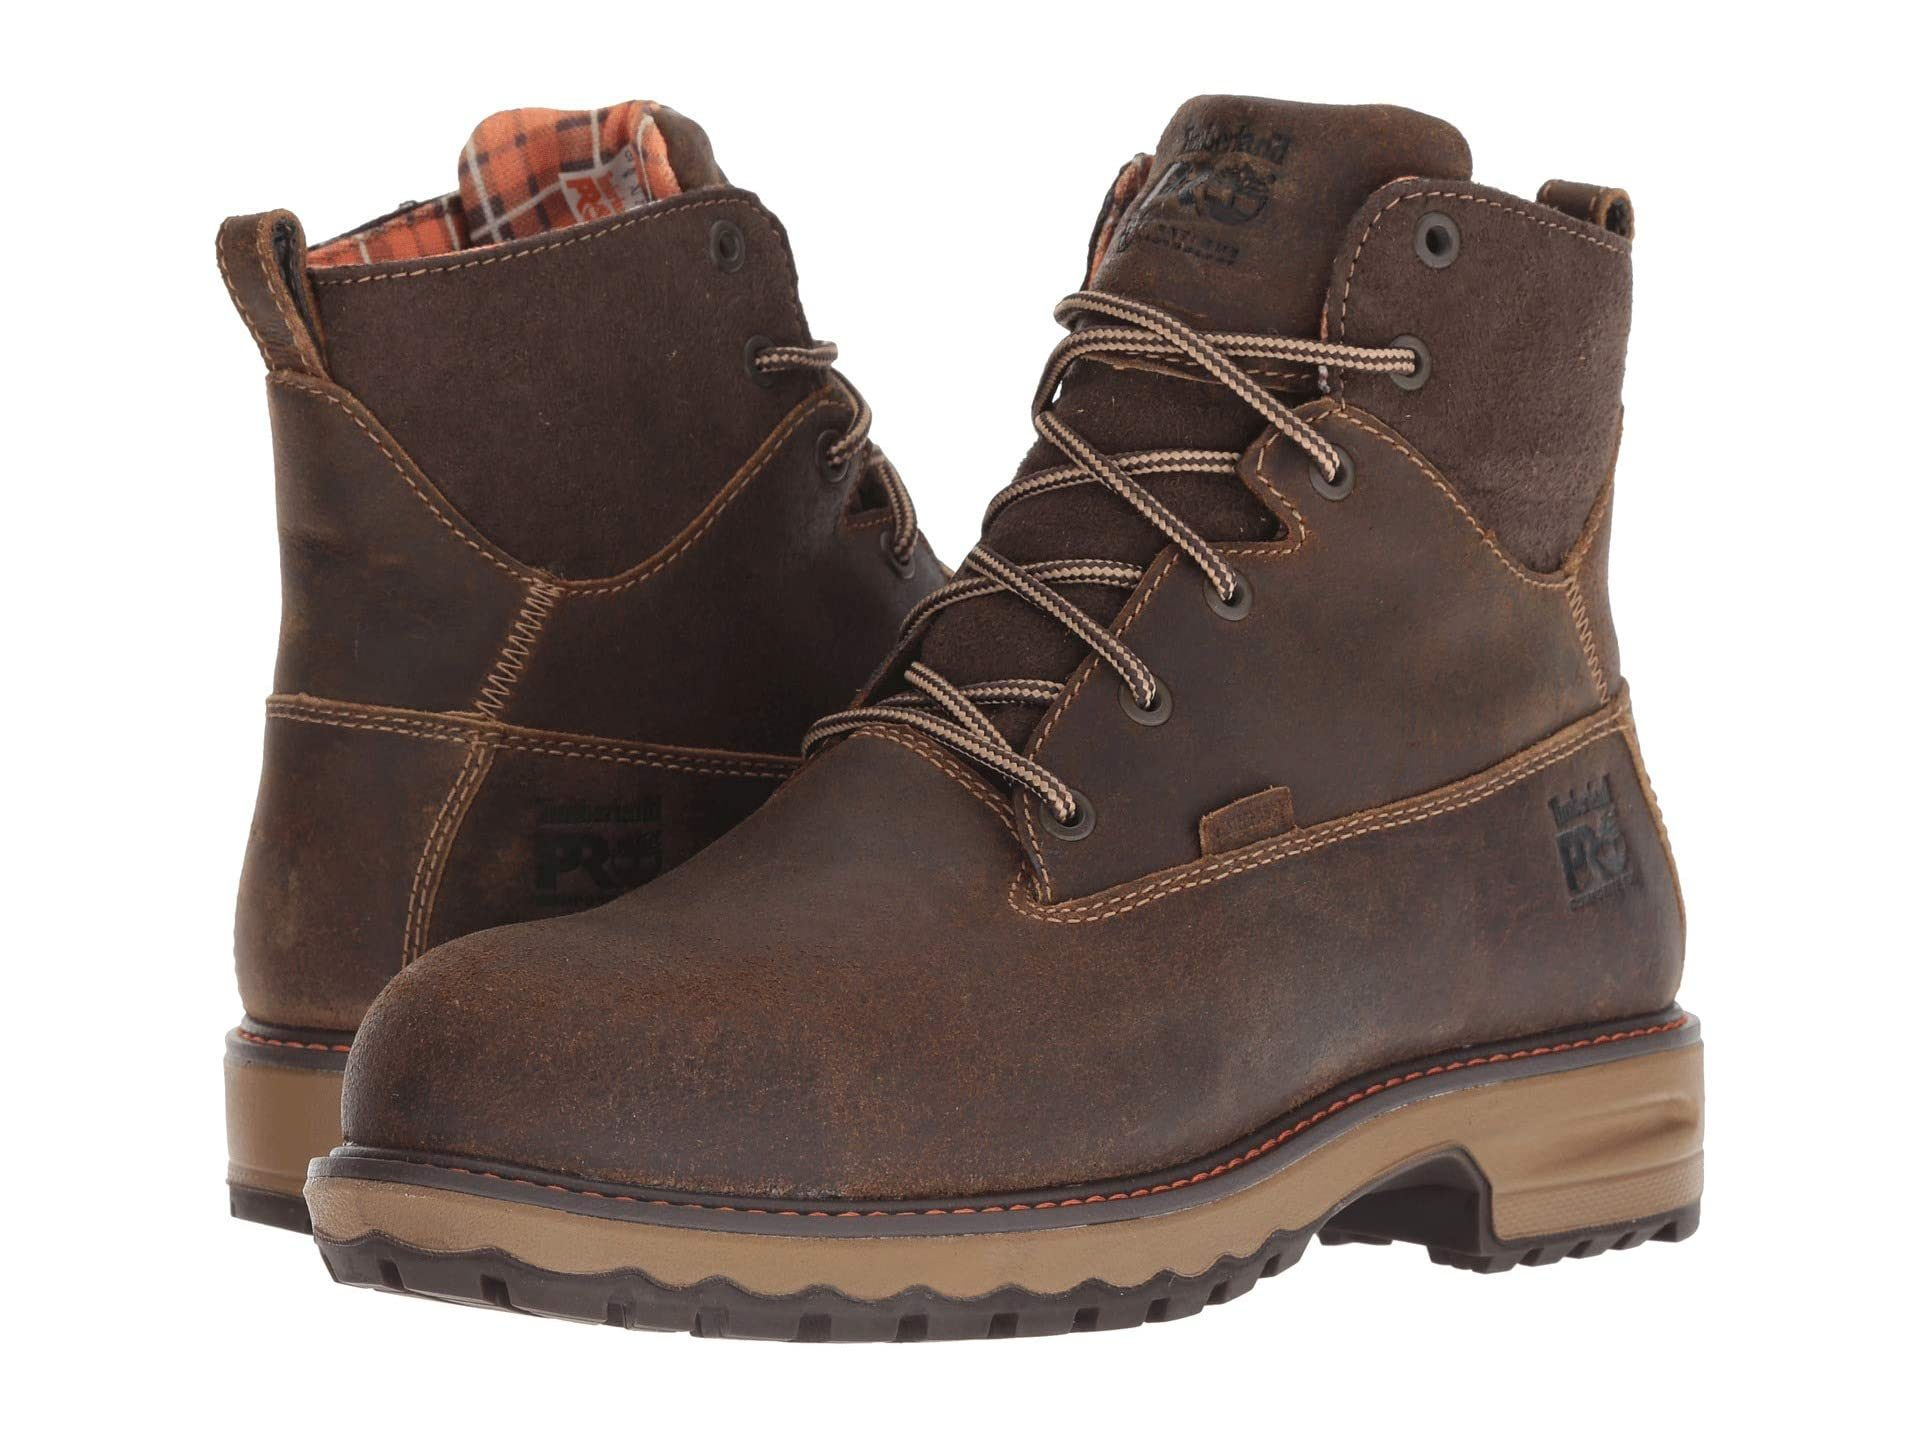 """Timberland PRO Hightower 6"""" Safety Toe WP 400 Insulated work boots"""